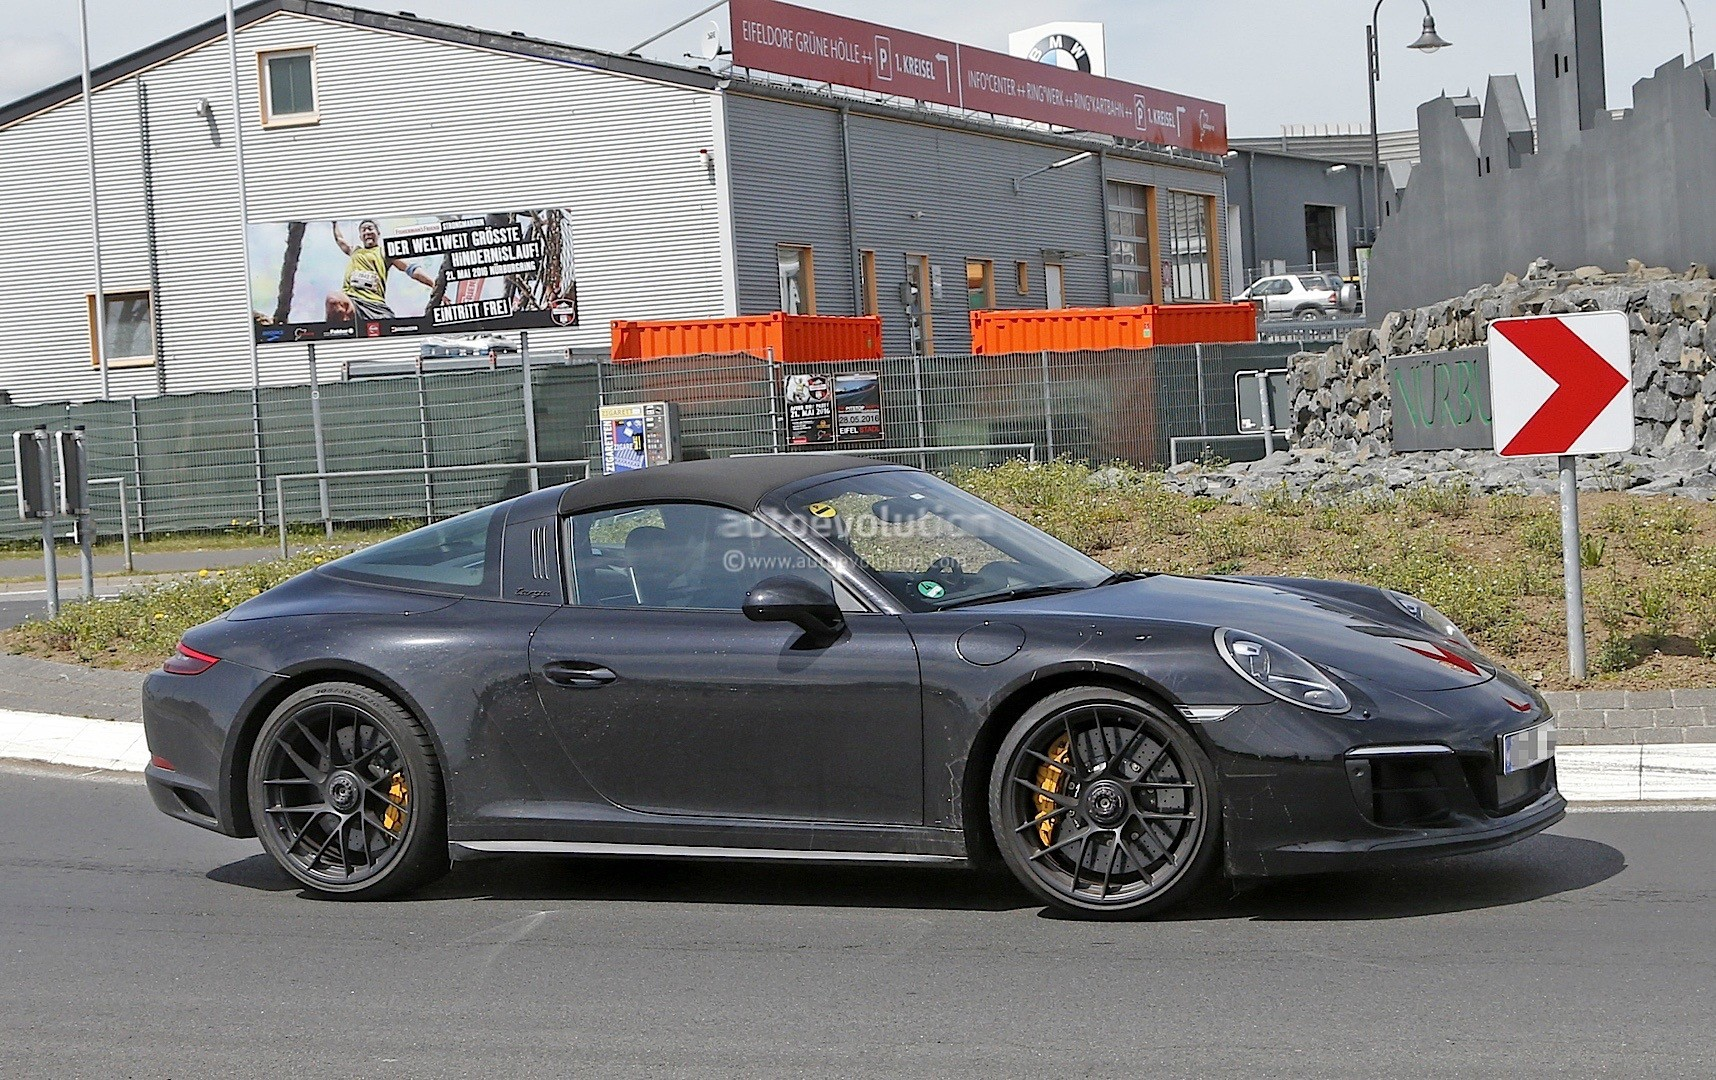 2017 Porsche 911 Targa Gts 9912 Spied Near The Nurburgring 107552 besides 2017 Porsche 911 Targa Gts 9912 Spied Near The Nurburgring 107552 likewise 2017 Porsche 911 Targa Gts 9912 Spied Near The Nurburgring 107552 as well  on 2017 porsche 911 targa gts 9912 spied near the nurburgring 107552